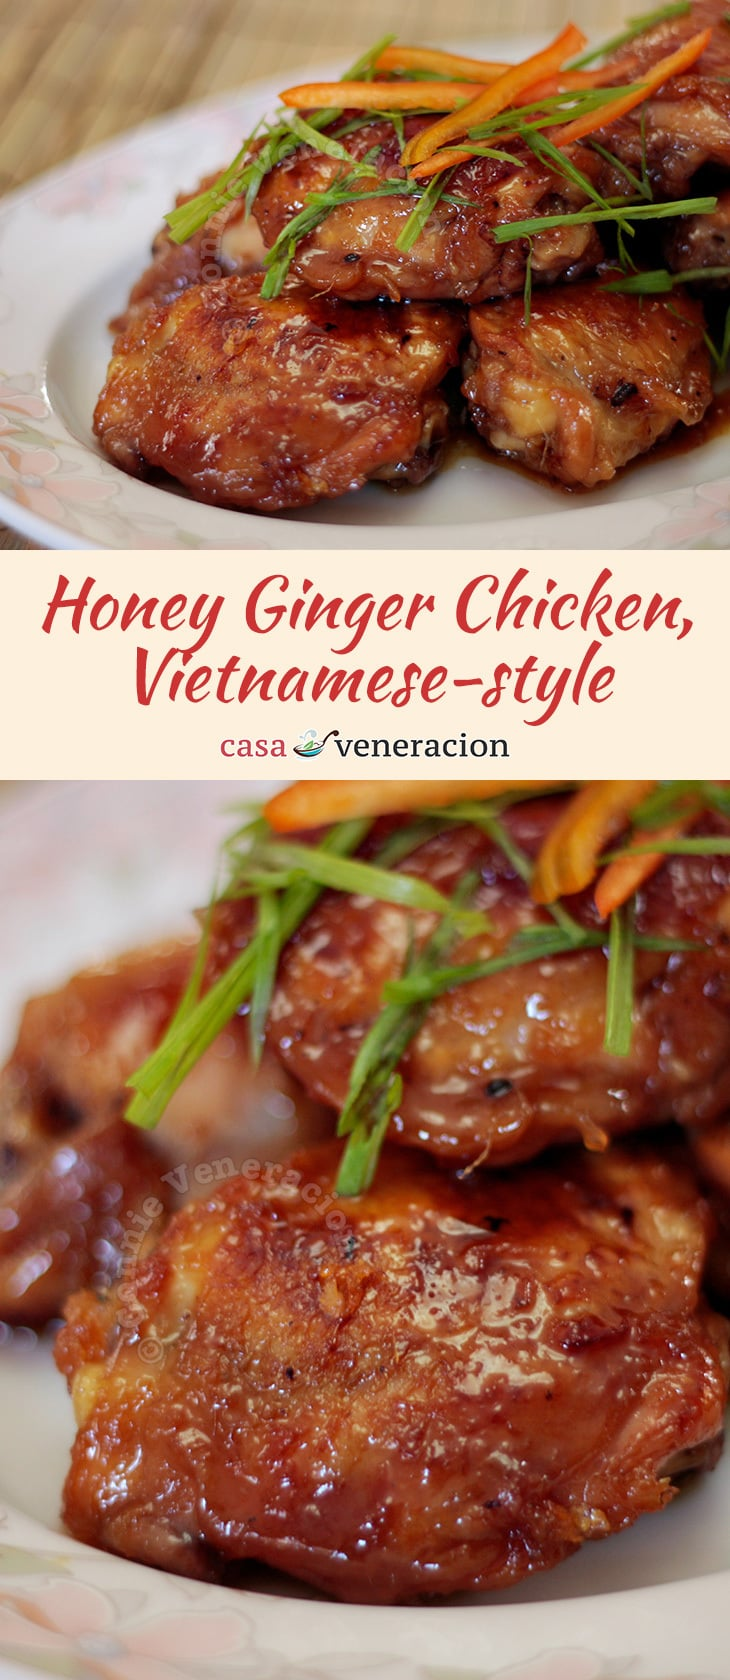 The basic honey ginger chicken is spiked with lime juice and finely chopped bird's eye chilies. The resulting flavor is as complex as it is pleasing.